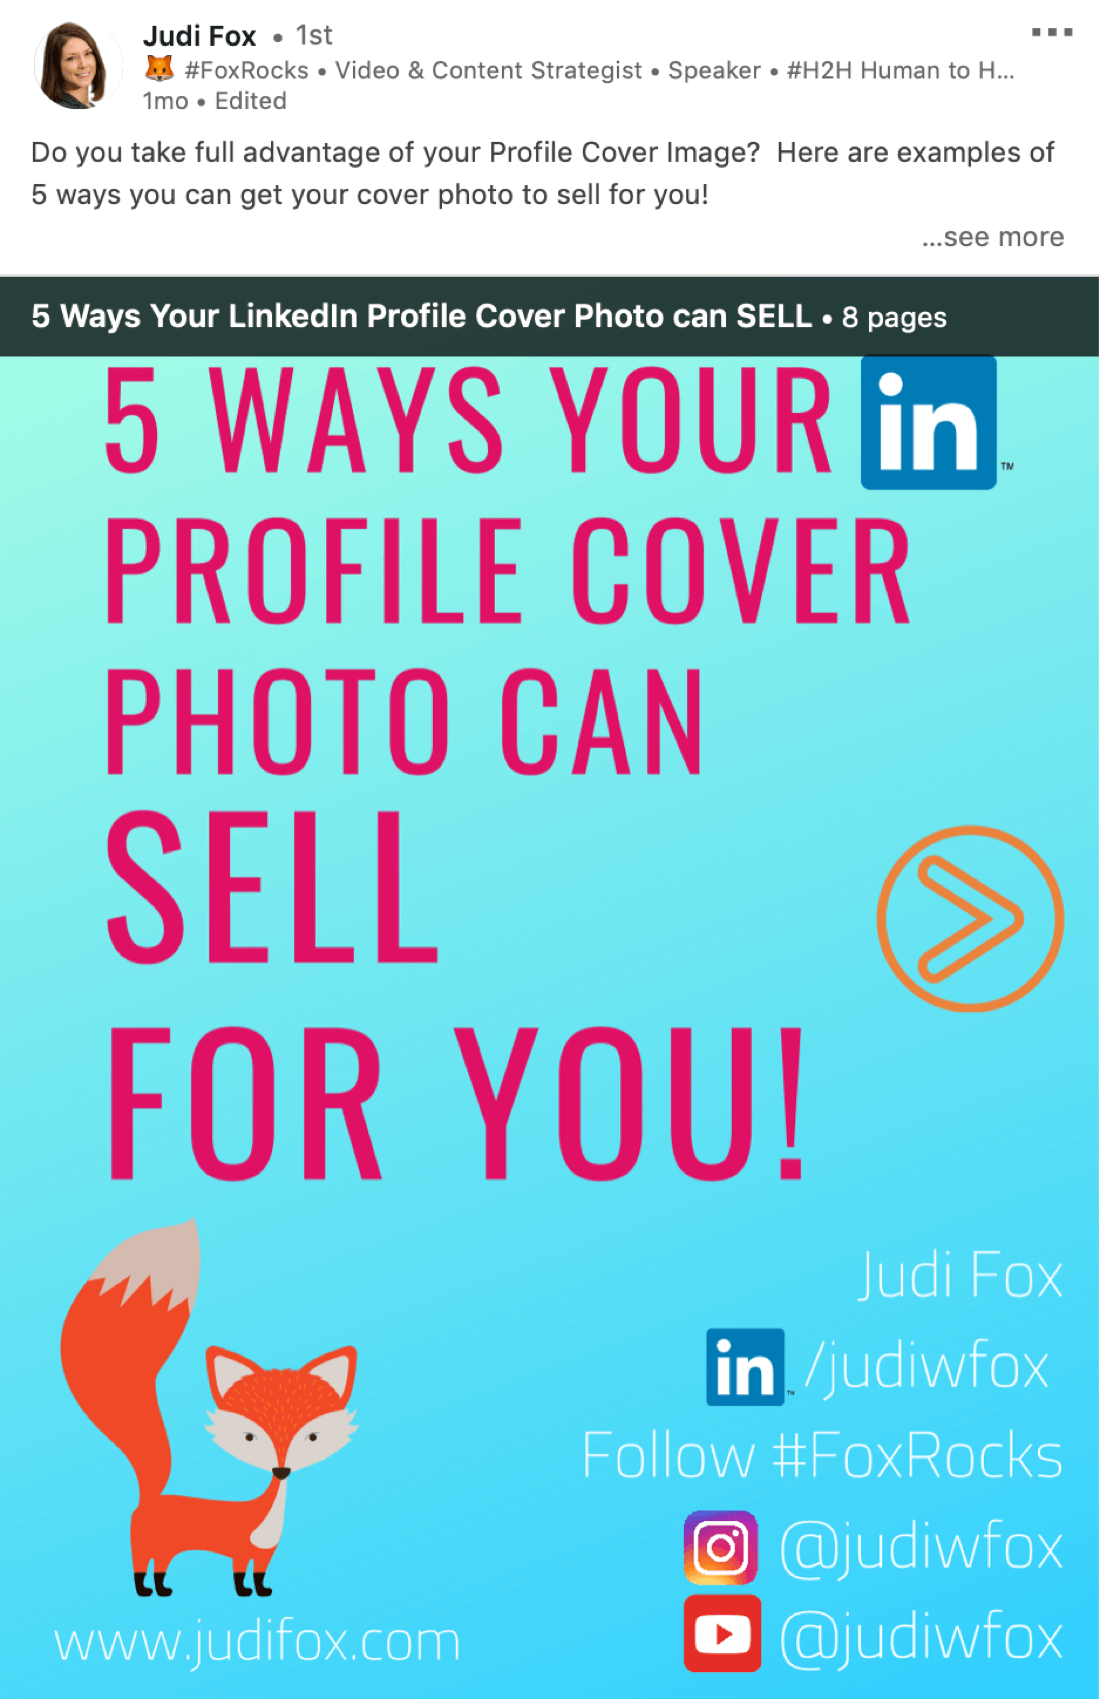 How to Share Documents in Your LinkedIn Posts: Marketing